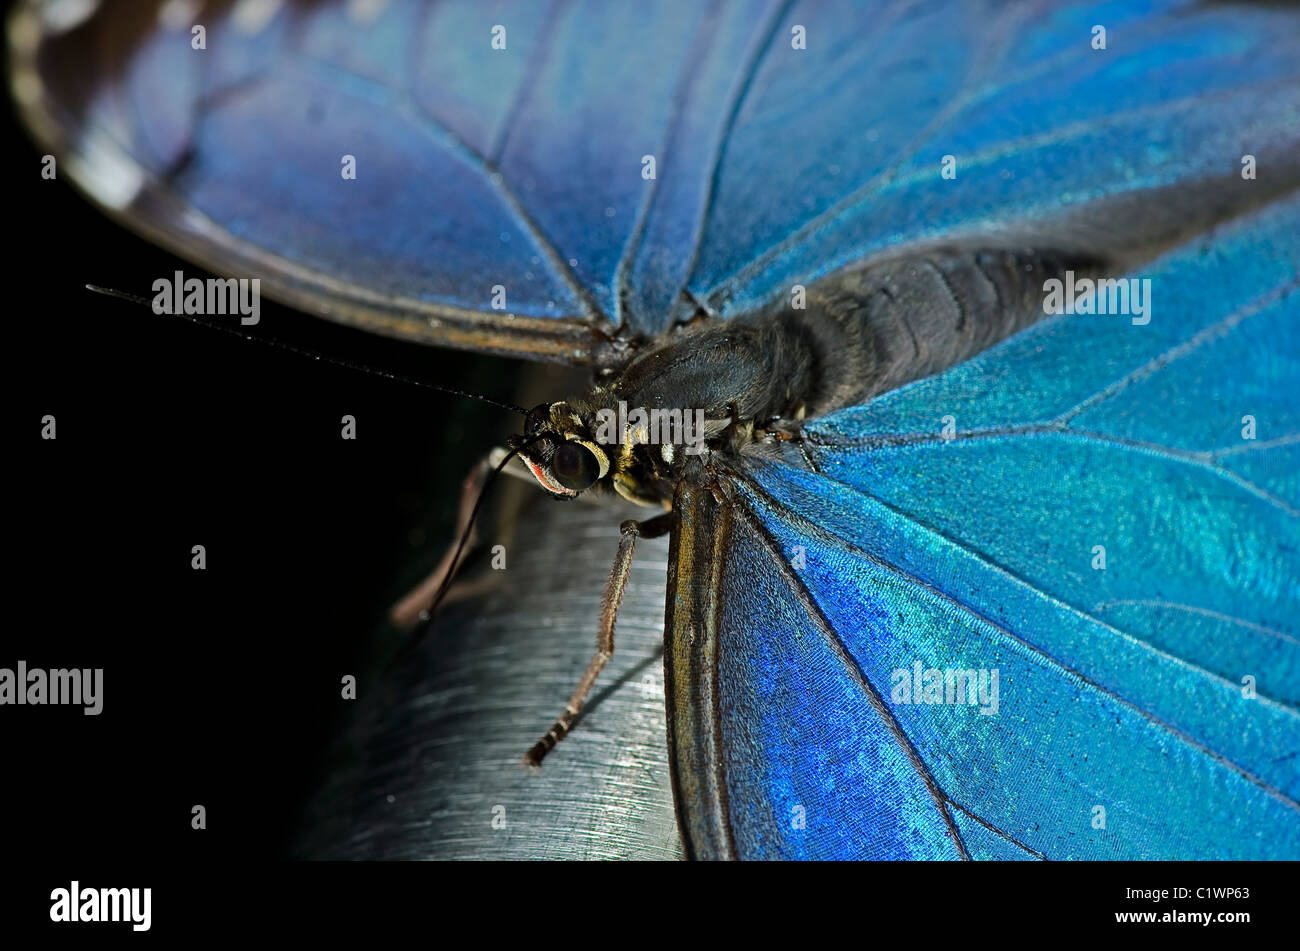 A Common Blue Morpho Butterfly, also known as an Owl Butterfly, of the Nymphalidae family. - Stock Image